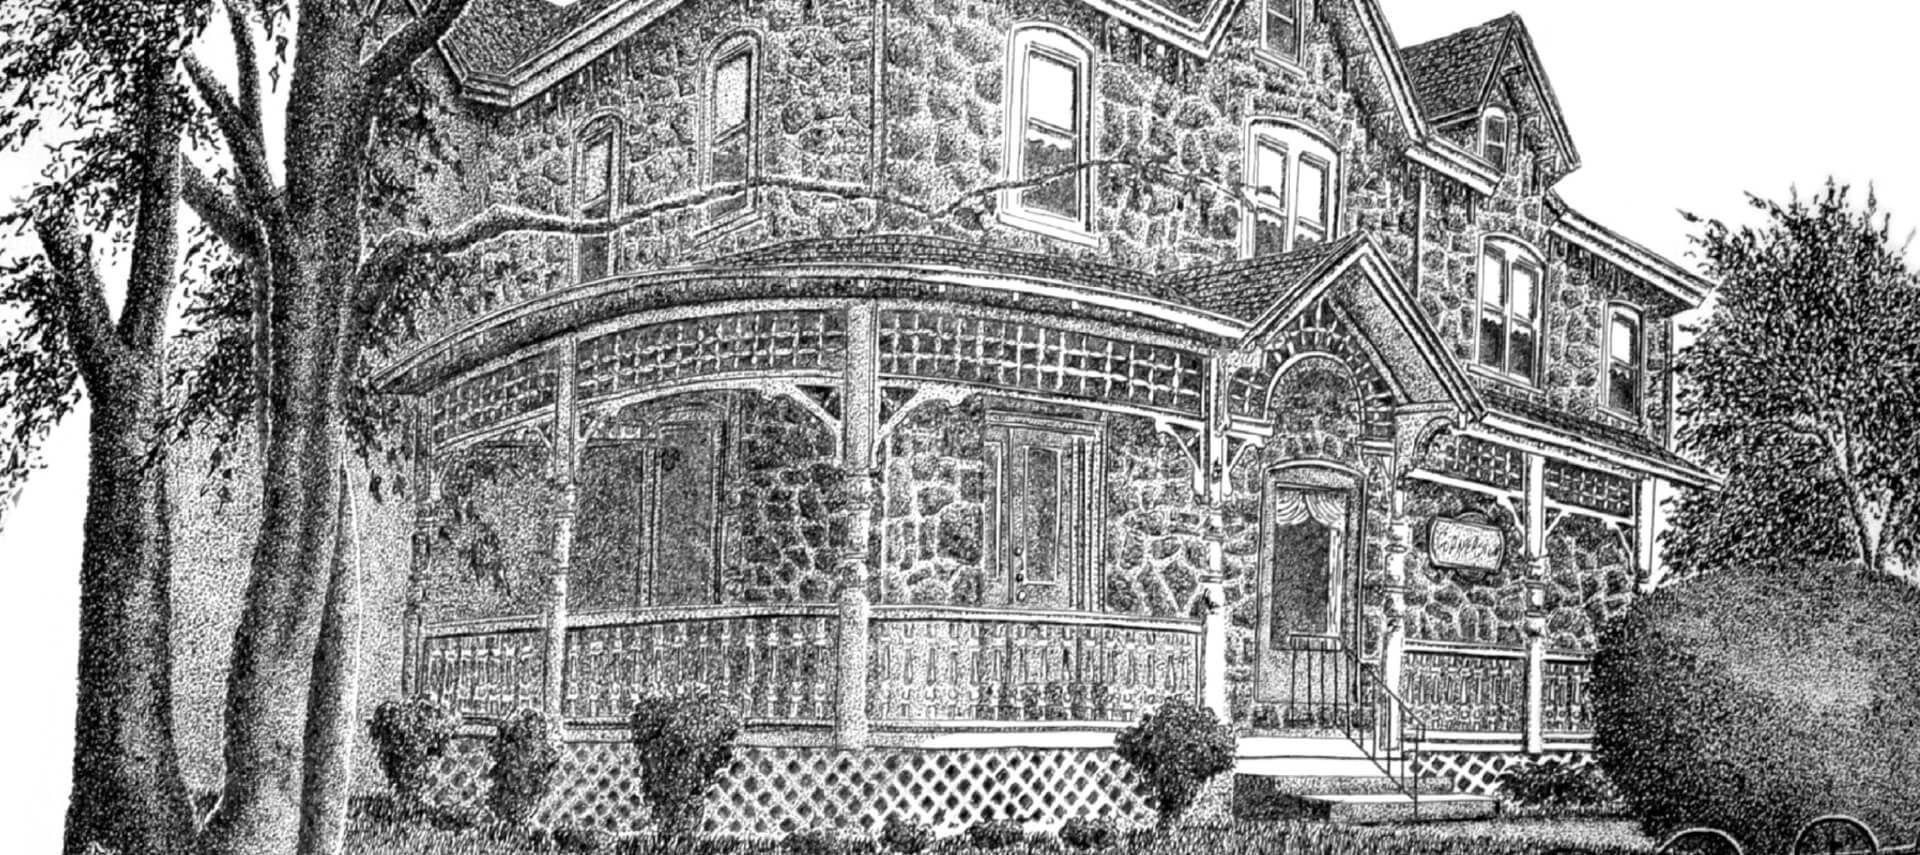 A black and white drawing of a state stone home with large wrap around porch